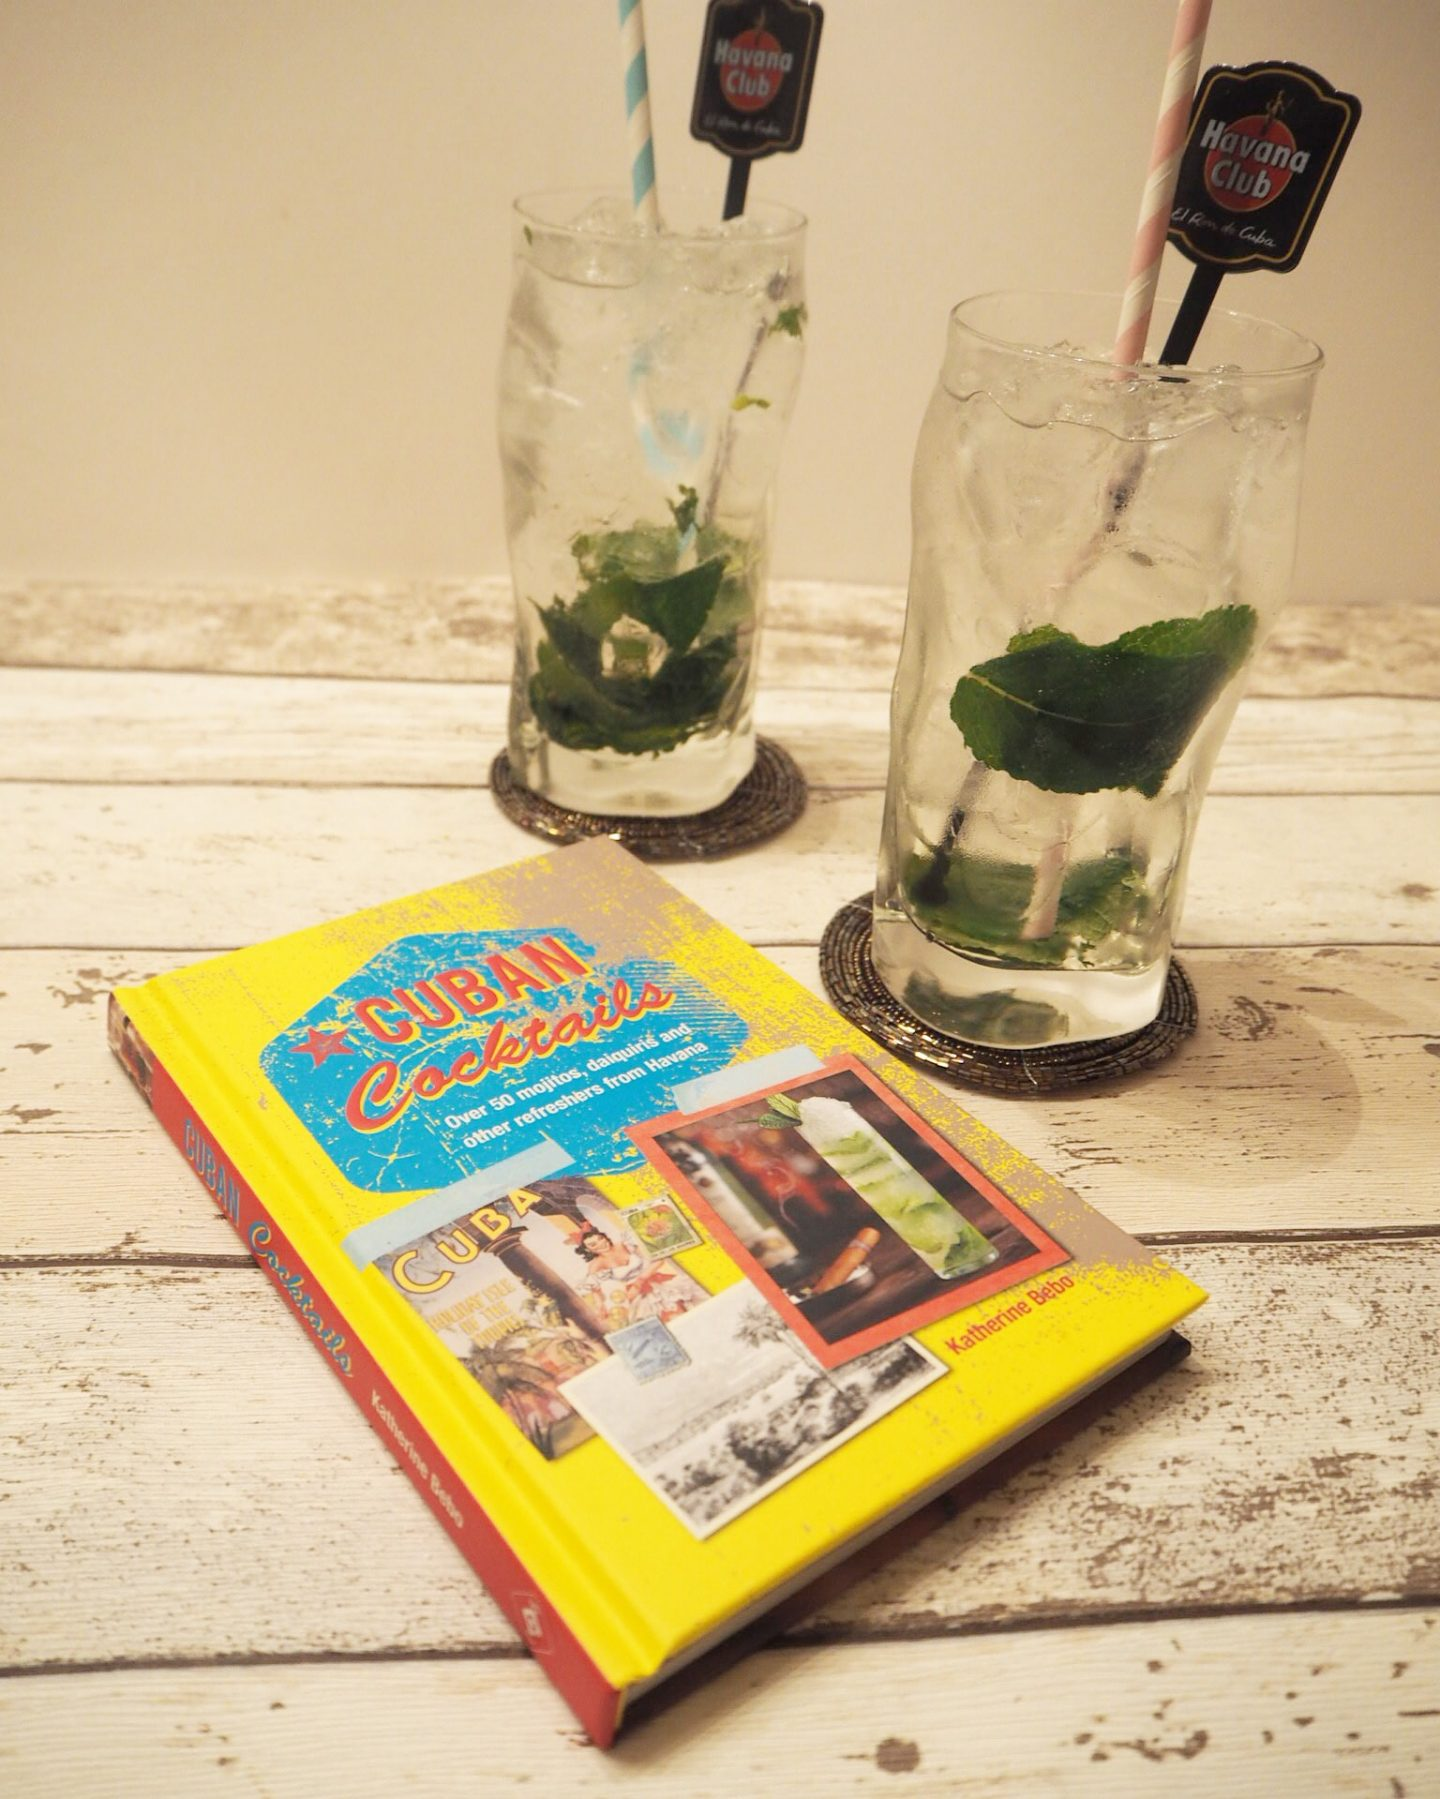 Book Review: Cuban Cocktails, Katherine Bebo